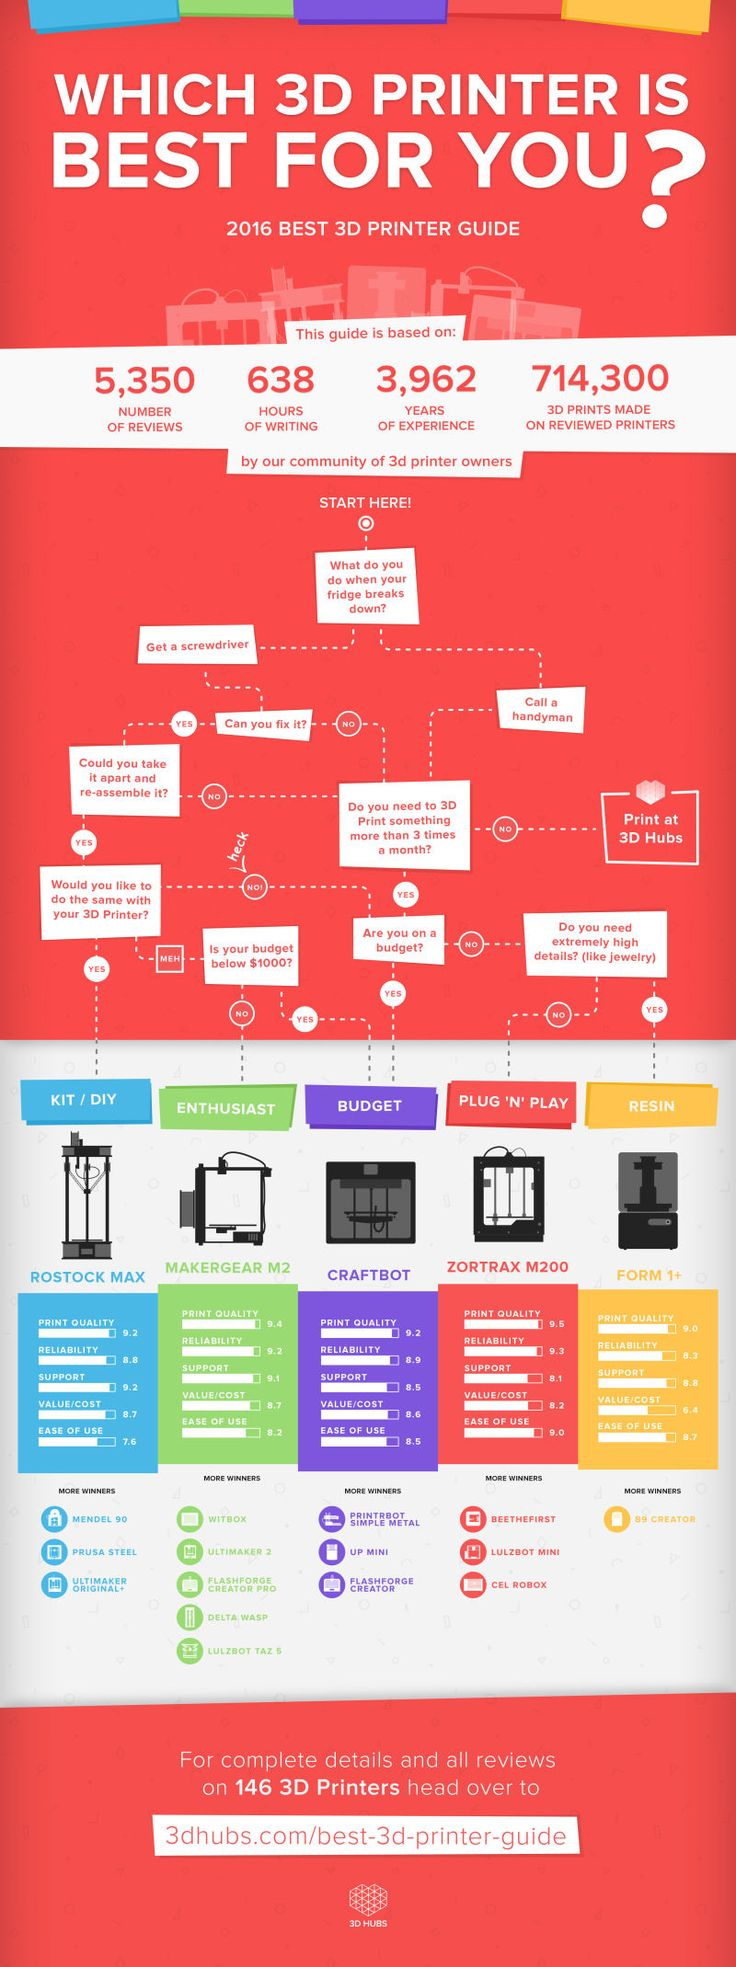 This Graphic Guides You to the Perfect 3D Printer for Your Needs | Infographic